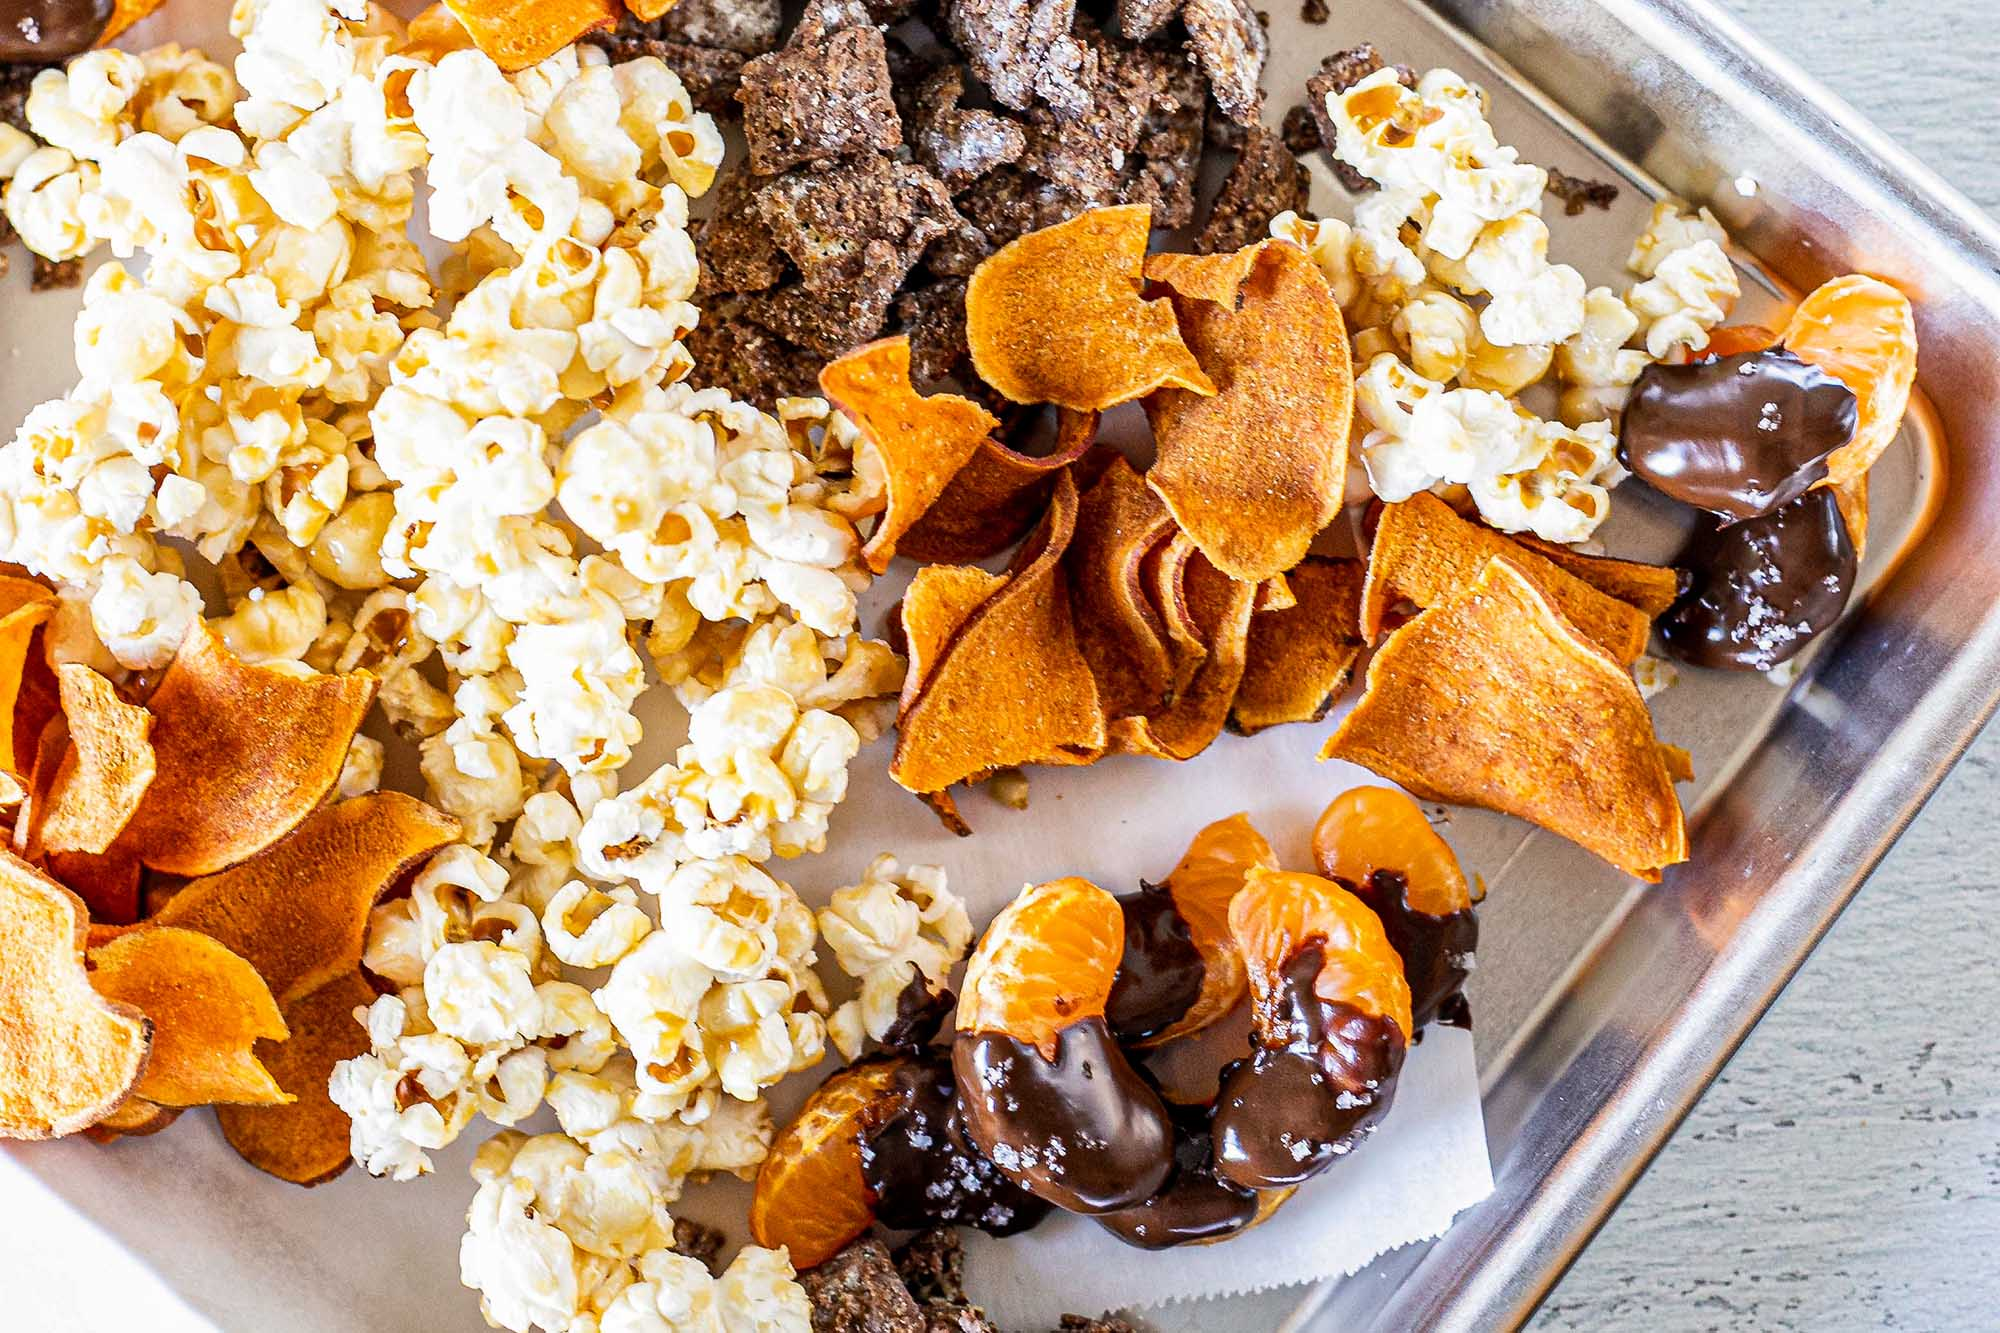 Kids lunch ideas with popcorn, chips and chocolate covered oranges on a baking tray.